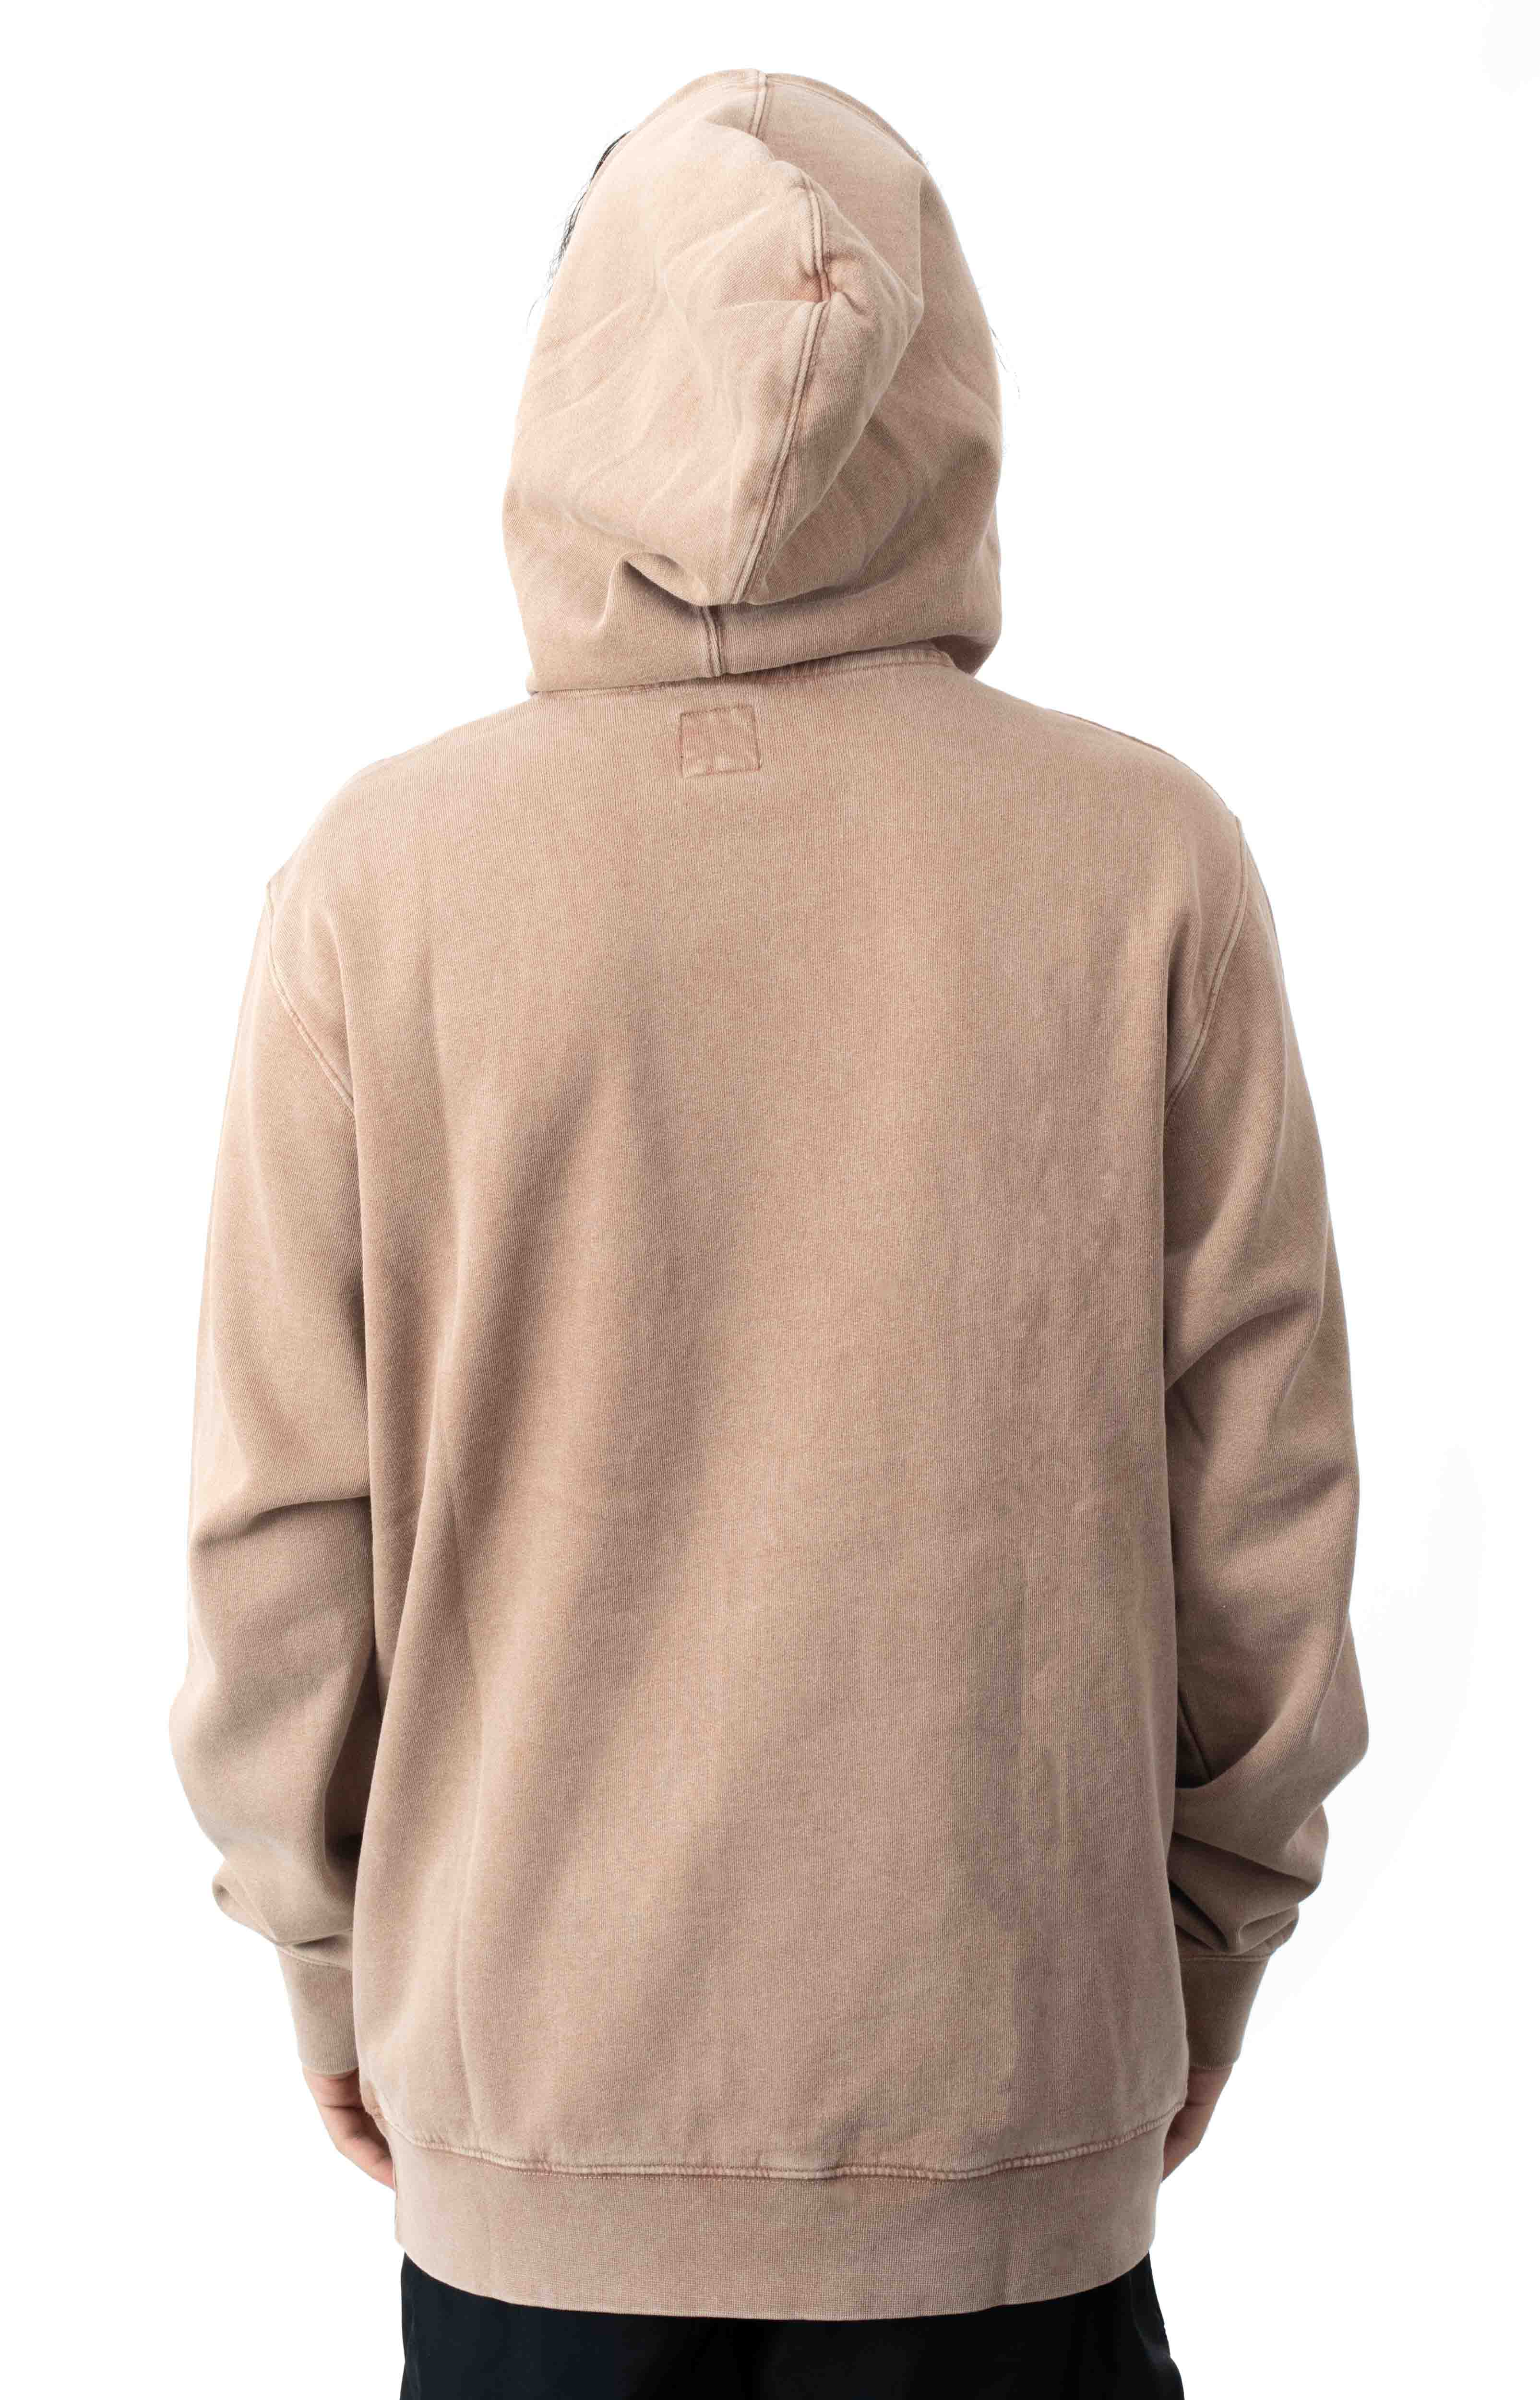 Mineral Pullover Hoodie - Camel  3